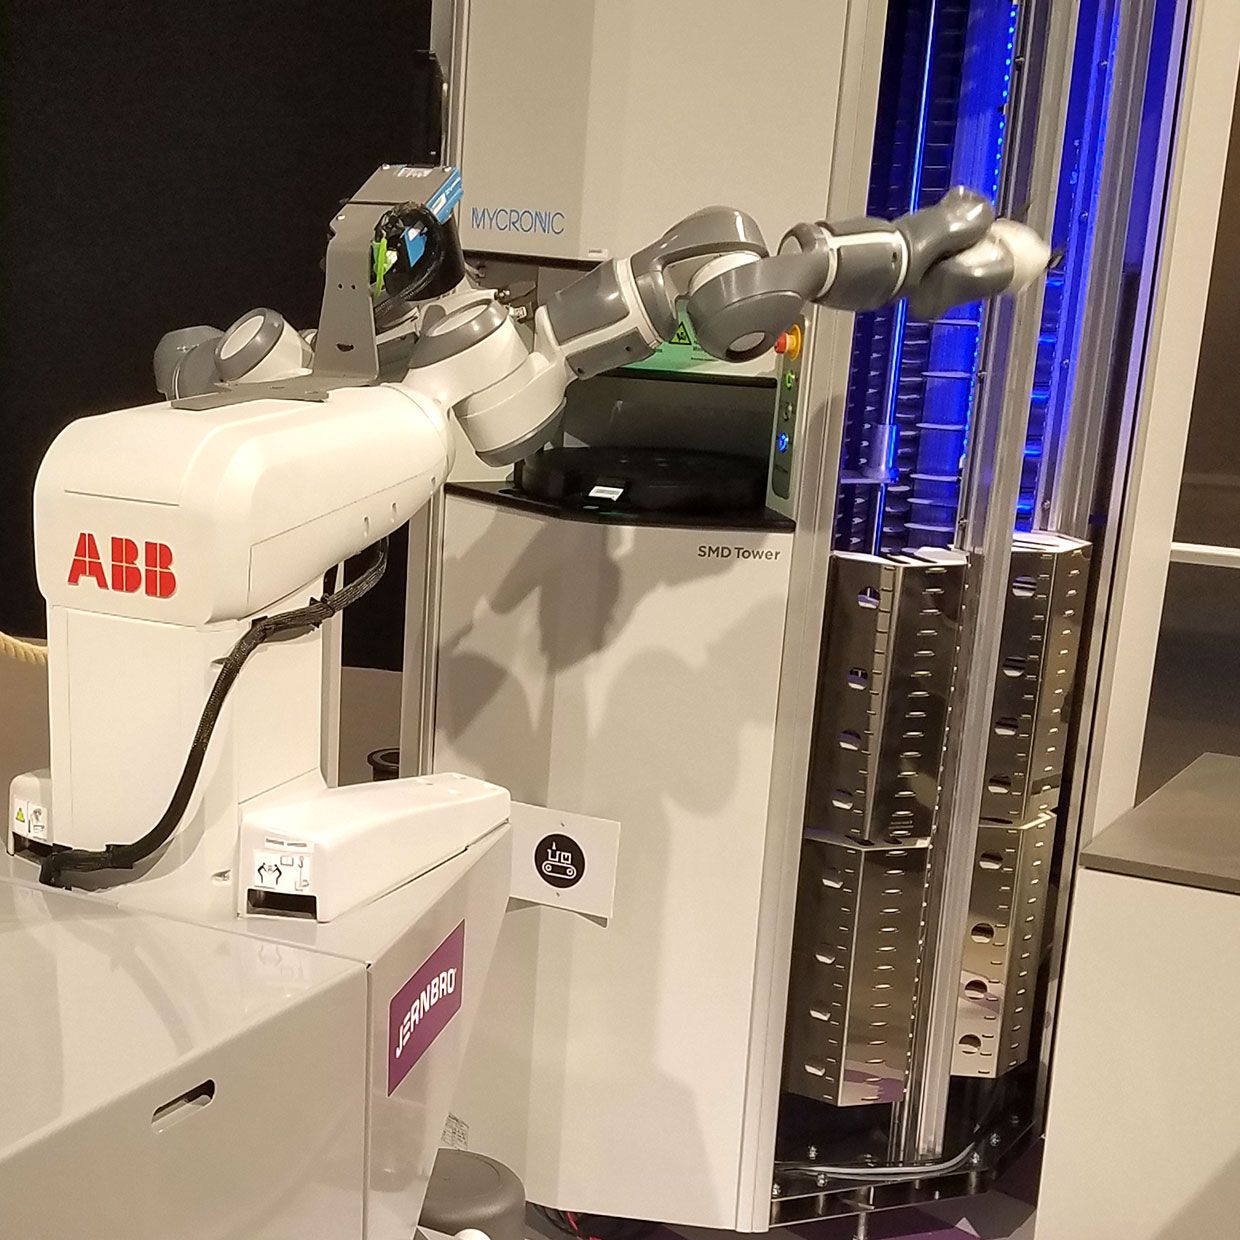 one ABB robot at Mobile World Congress Barcelona